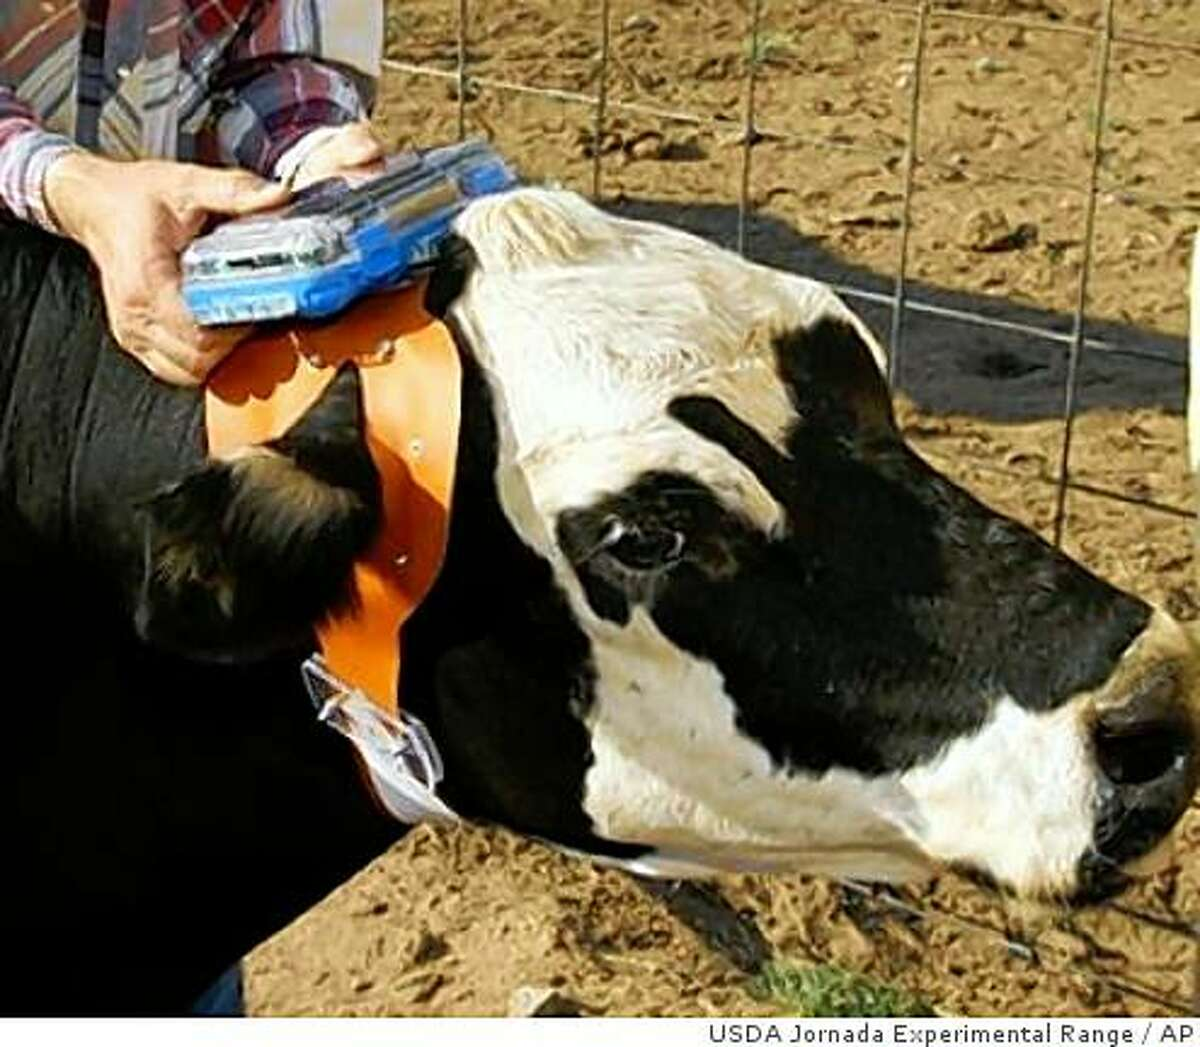 """This July 2007 photo provided by the USDA's Jornada Experimental Range shows a cow being outfitted with an early prototype of the """"Ear-A-Round"""" device at the Jornada Experimental Range in Las Cruces, N.M. The device, created by researchers at the experimental range and the Massachusetts Institute of Technology, can funnel voice commands and sounds directly into a cow's ear to guide them while out on the range. When equipped with speakers the device can project sounds into either the right or left ear to gather cows. The device is part of a project to remotely command cattle using satellite and computer science technology. (AP Photo/USDA Jornada Experimental Range)"""